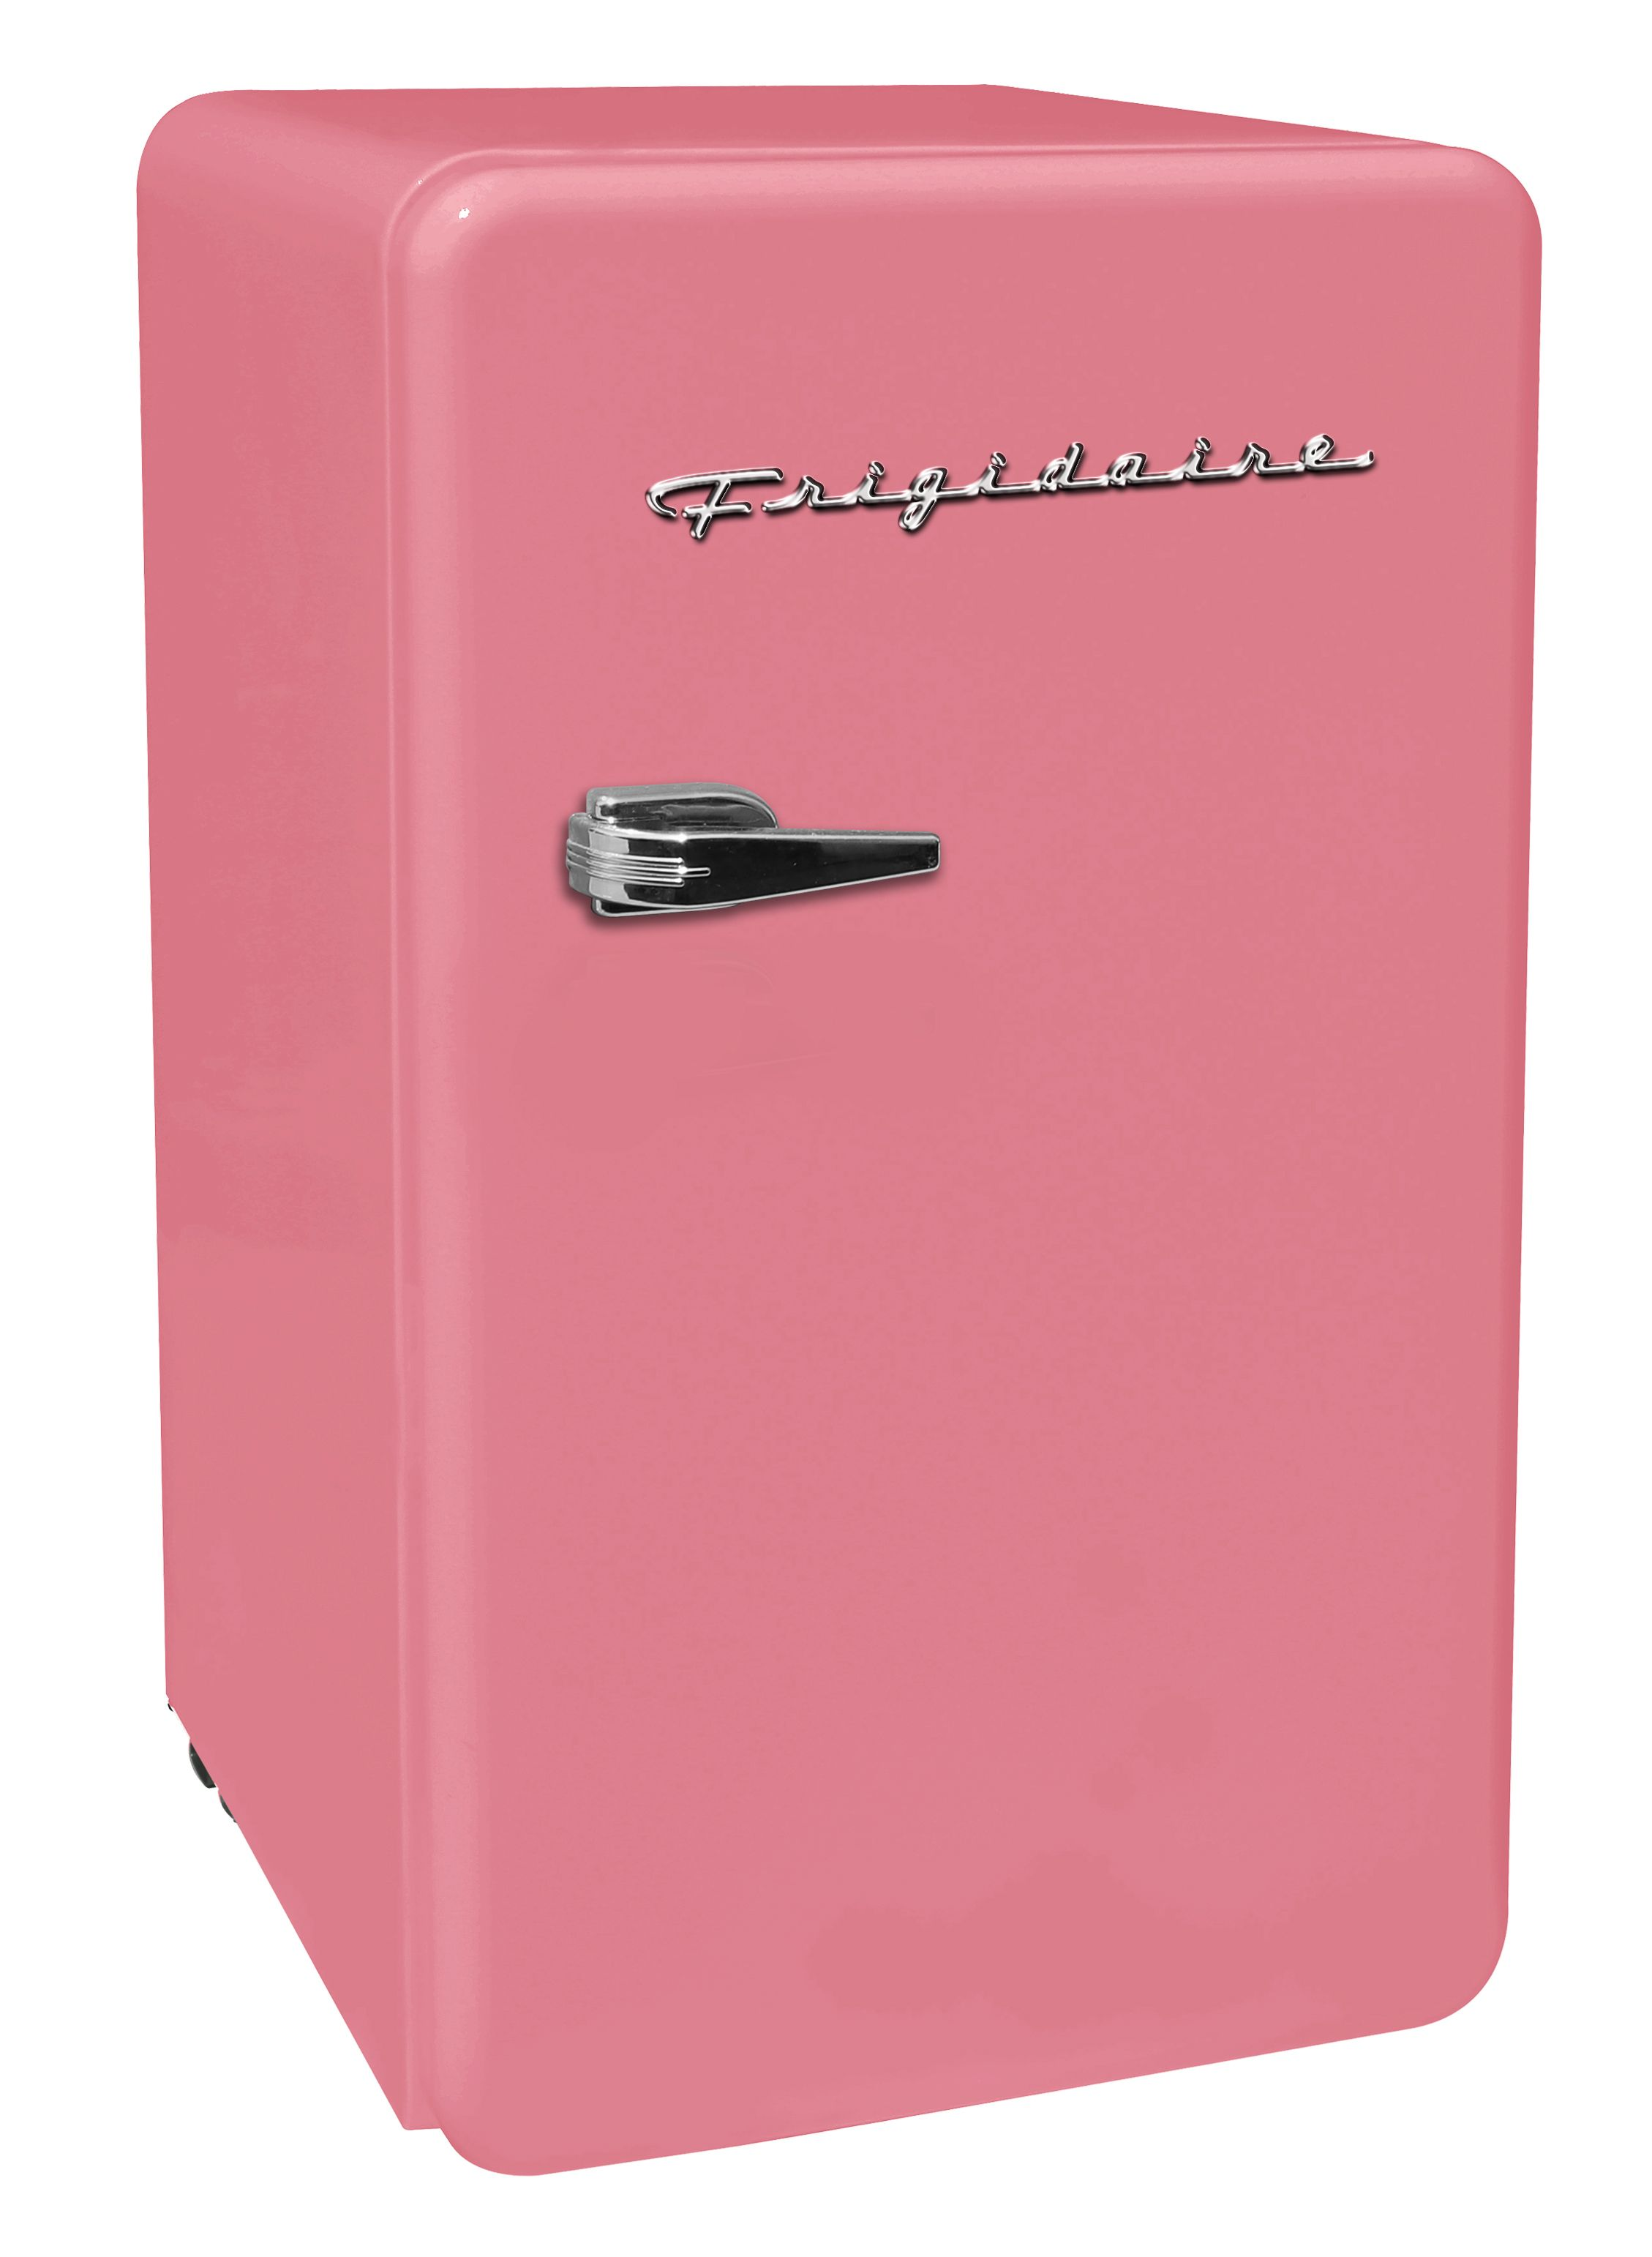 Frigidaire 3 2 Cu Ft Single Door Retro Mini Fridge Pink Walmart Com In 2020 Mini Fridge In Bedroom Mini Fridge Retro Fridge